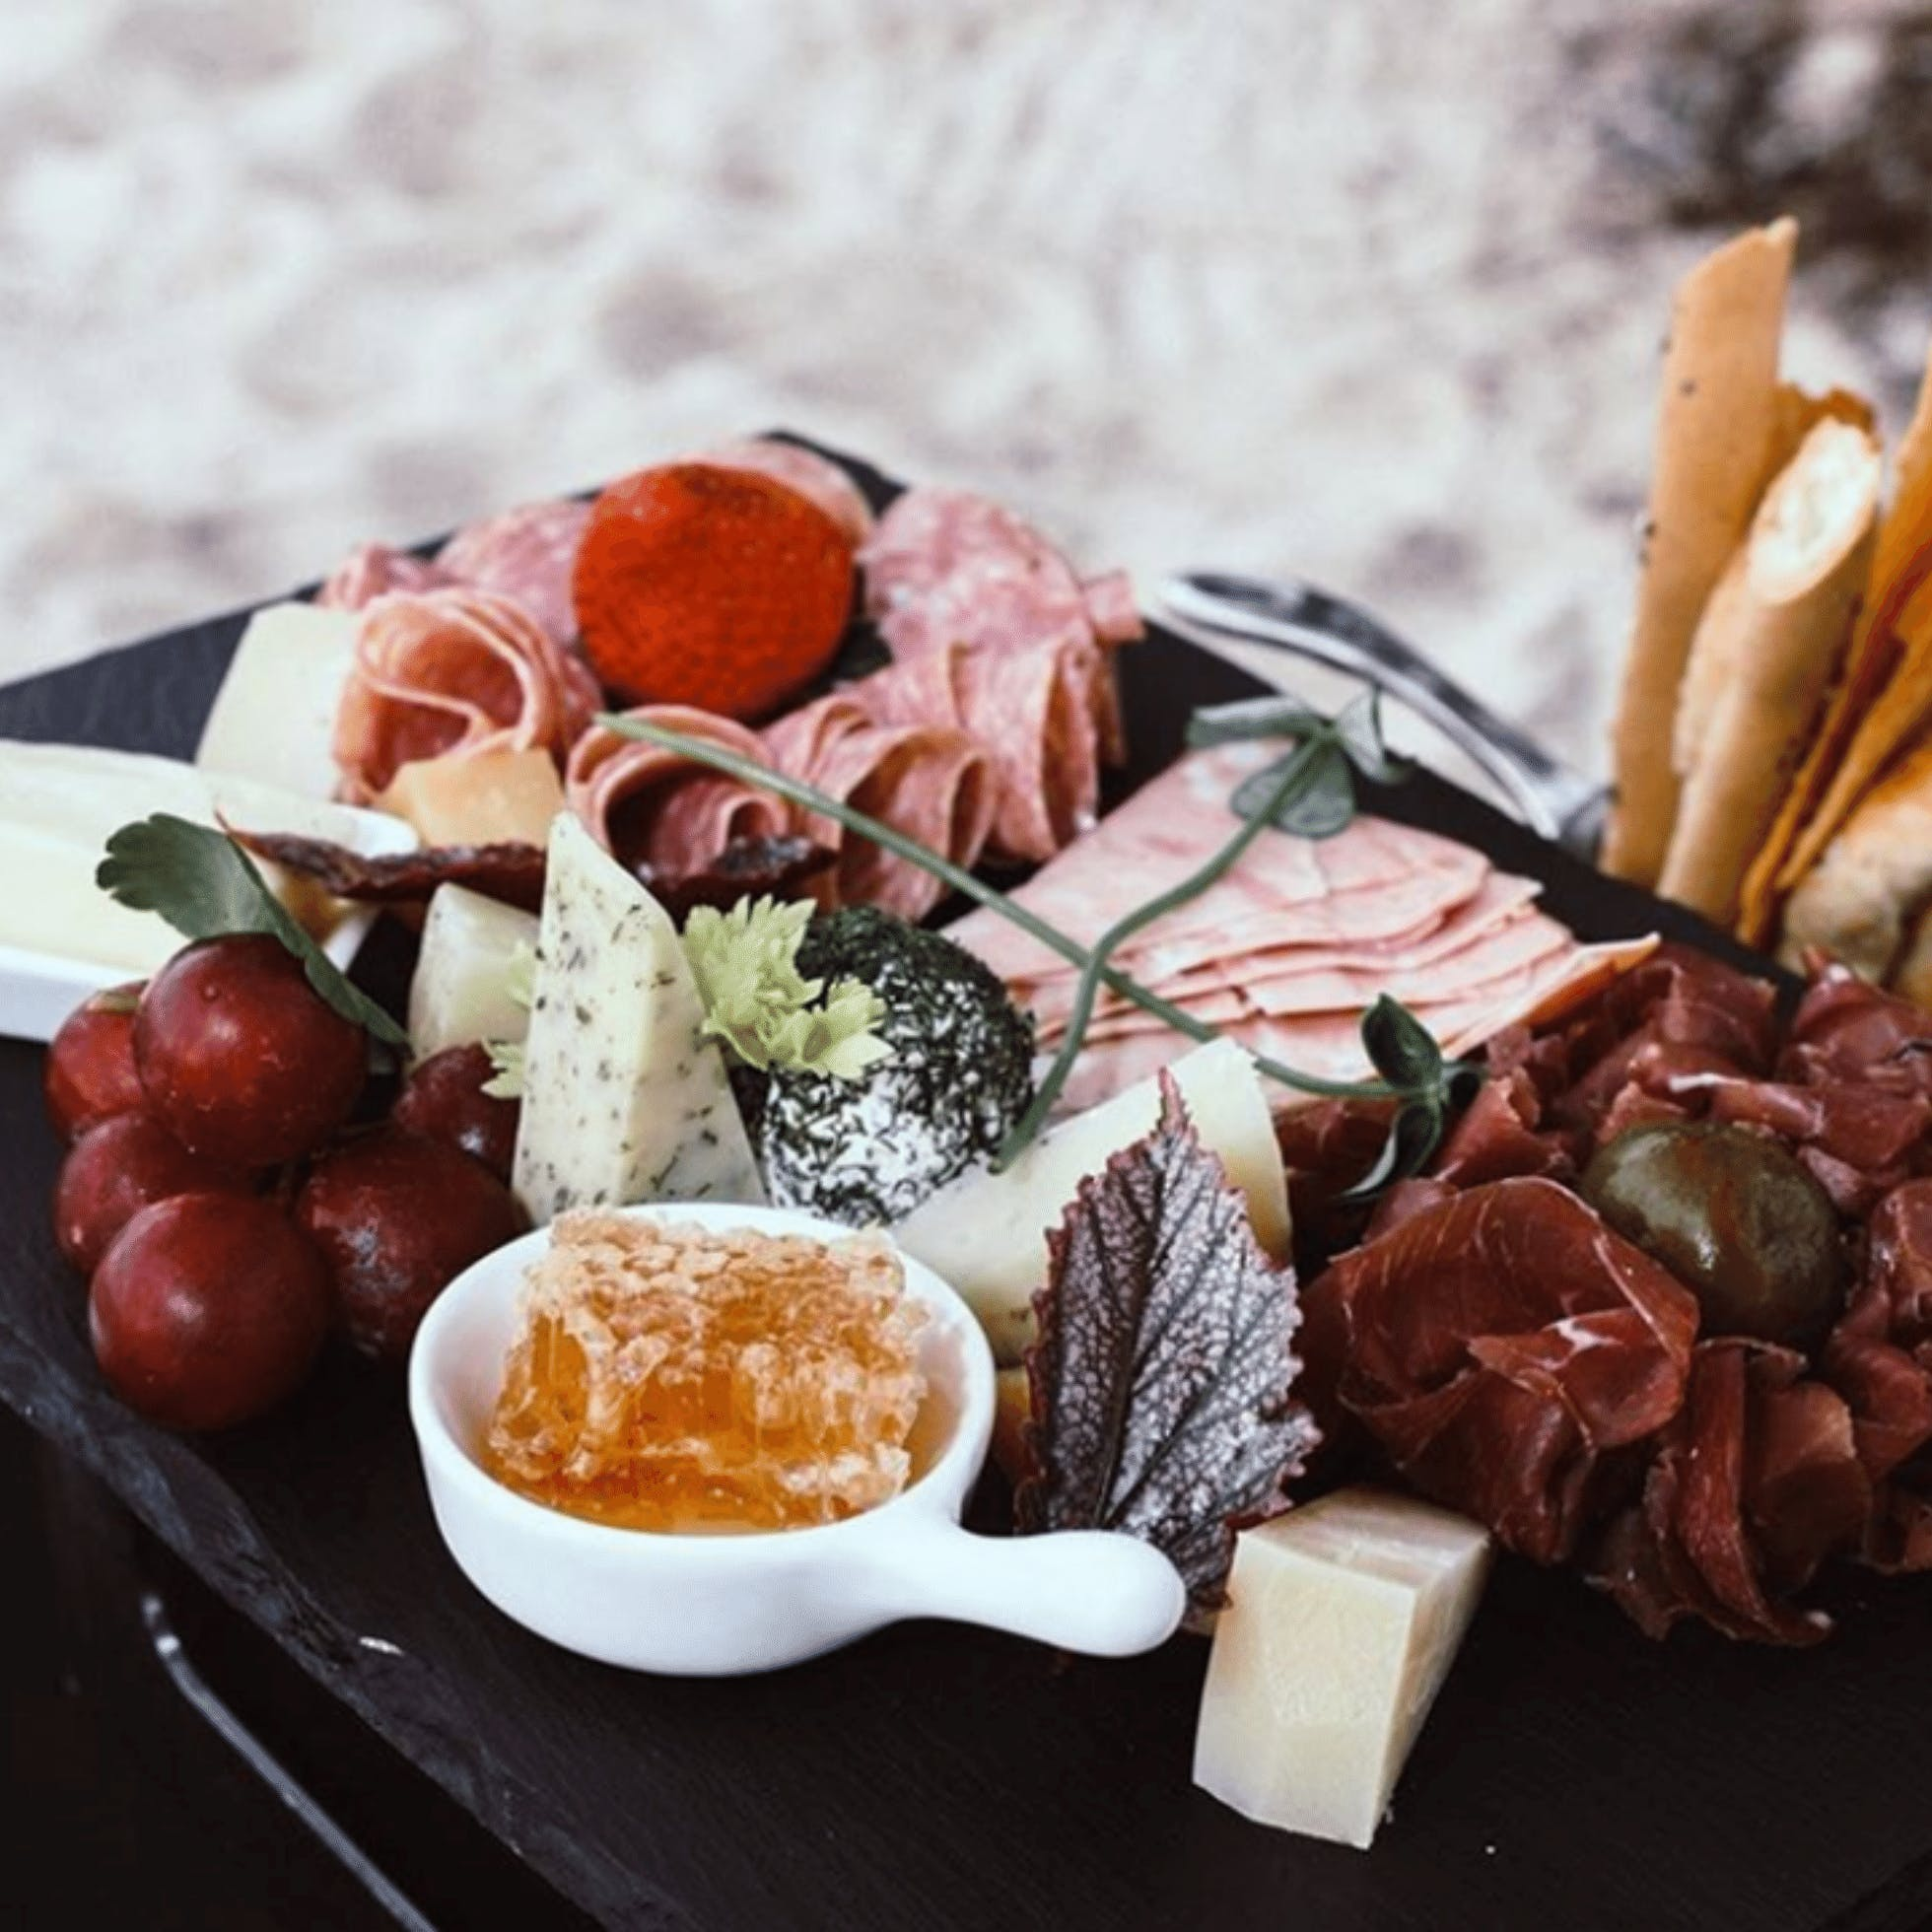 Charcuterie Board with Cheese, Meat, and Fruit at Bateau in Richmond, VA